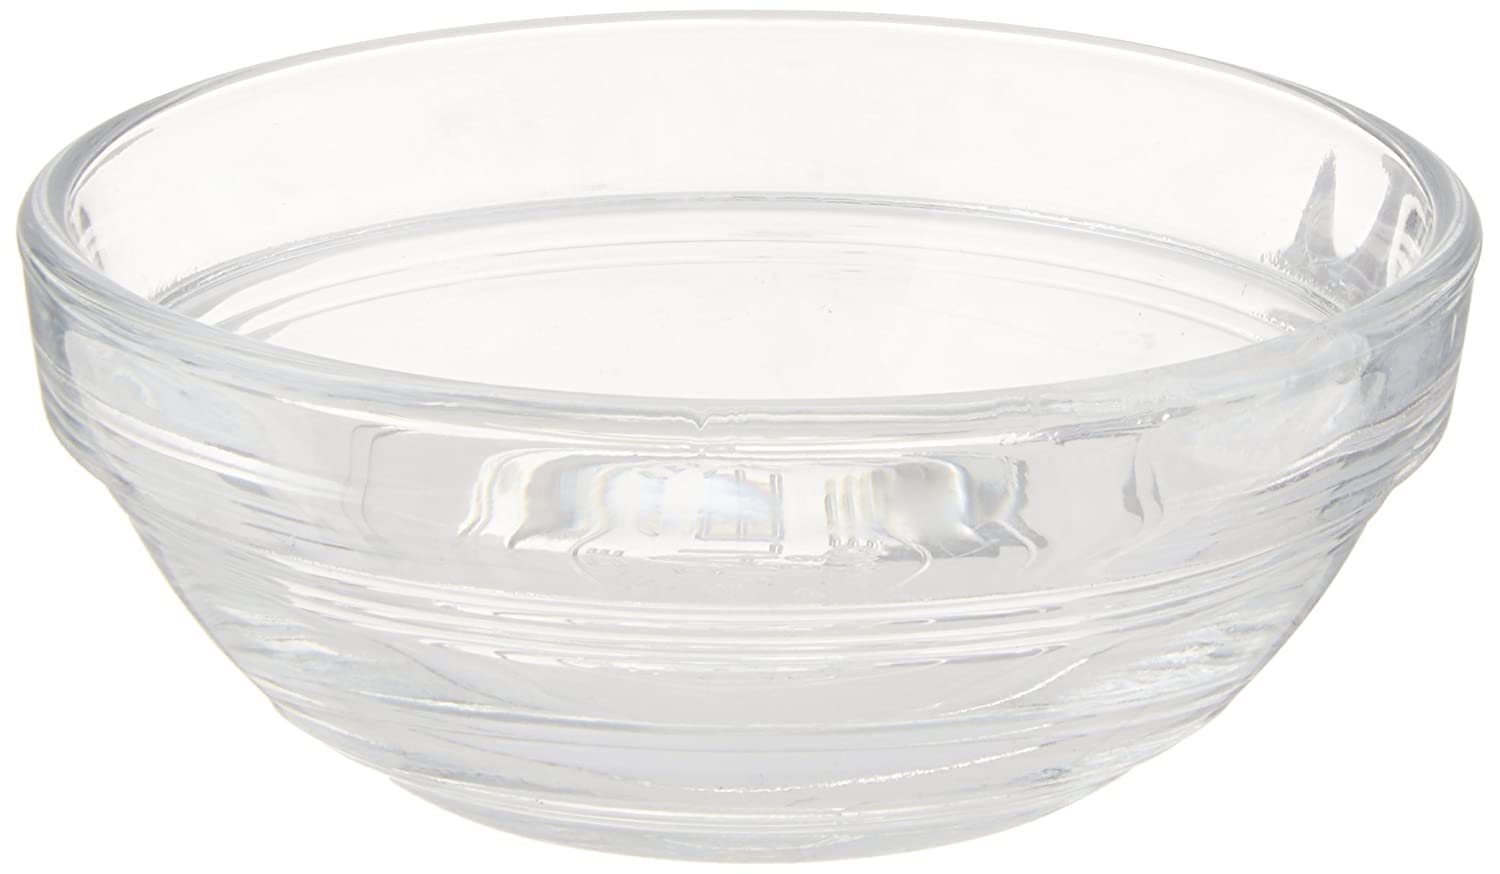 Duralex Lys Stackable 8 Piece Glass Bowl Set, 2 oz, Clear 2021AC04/8